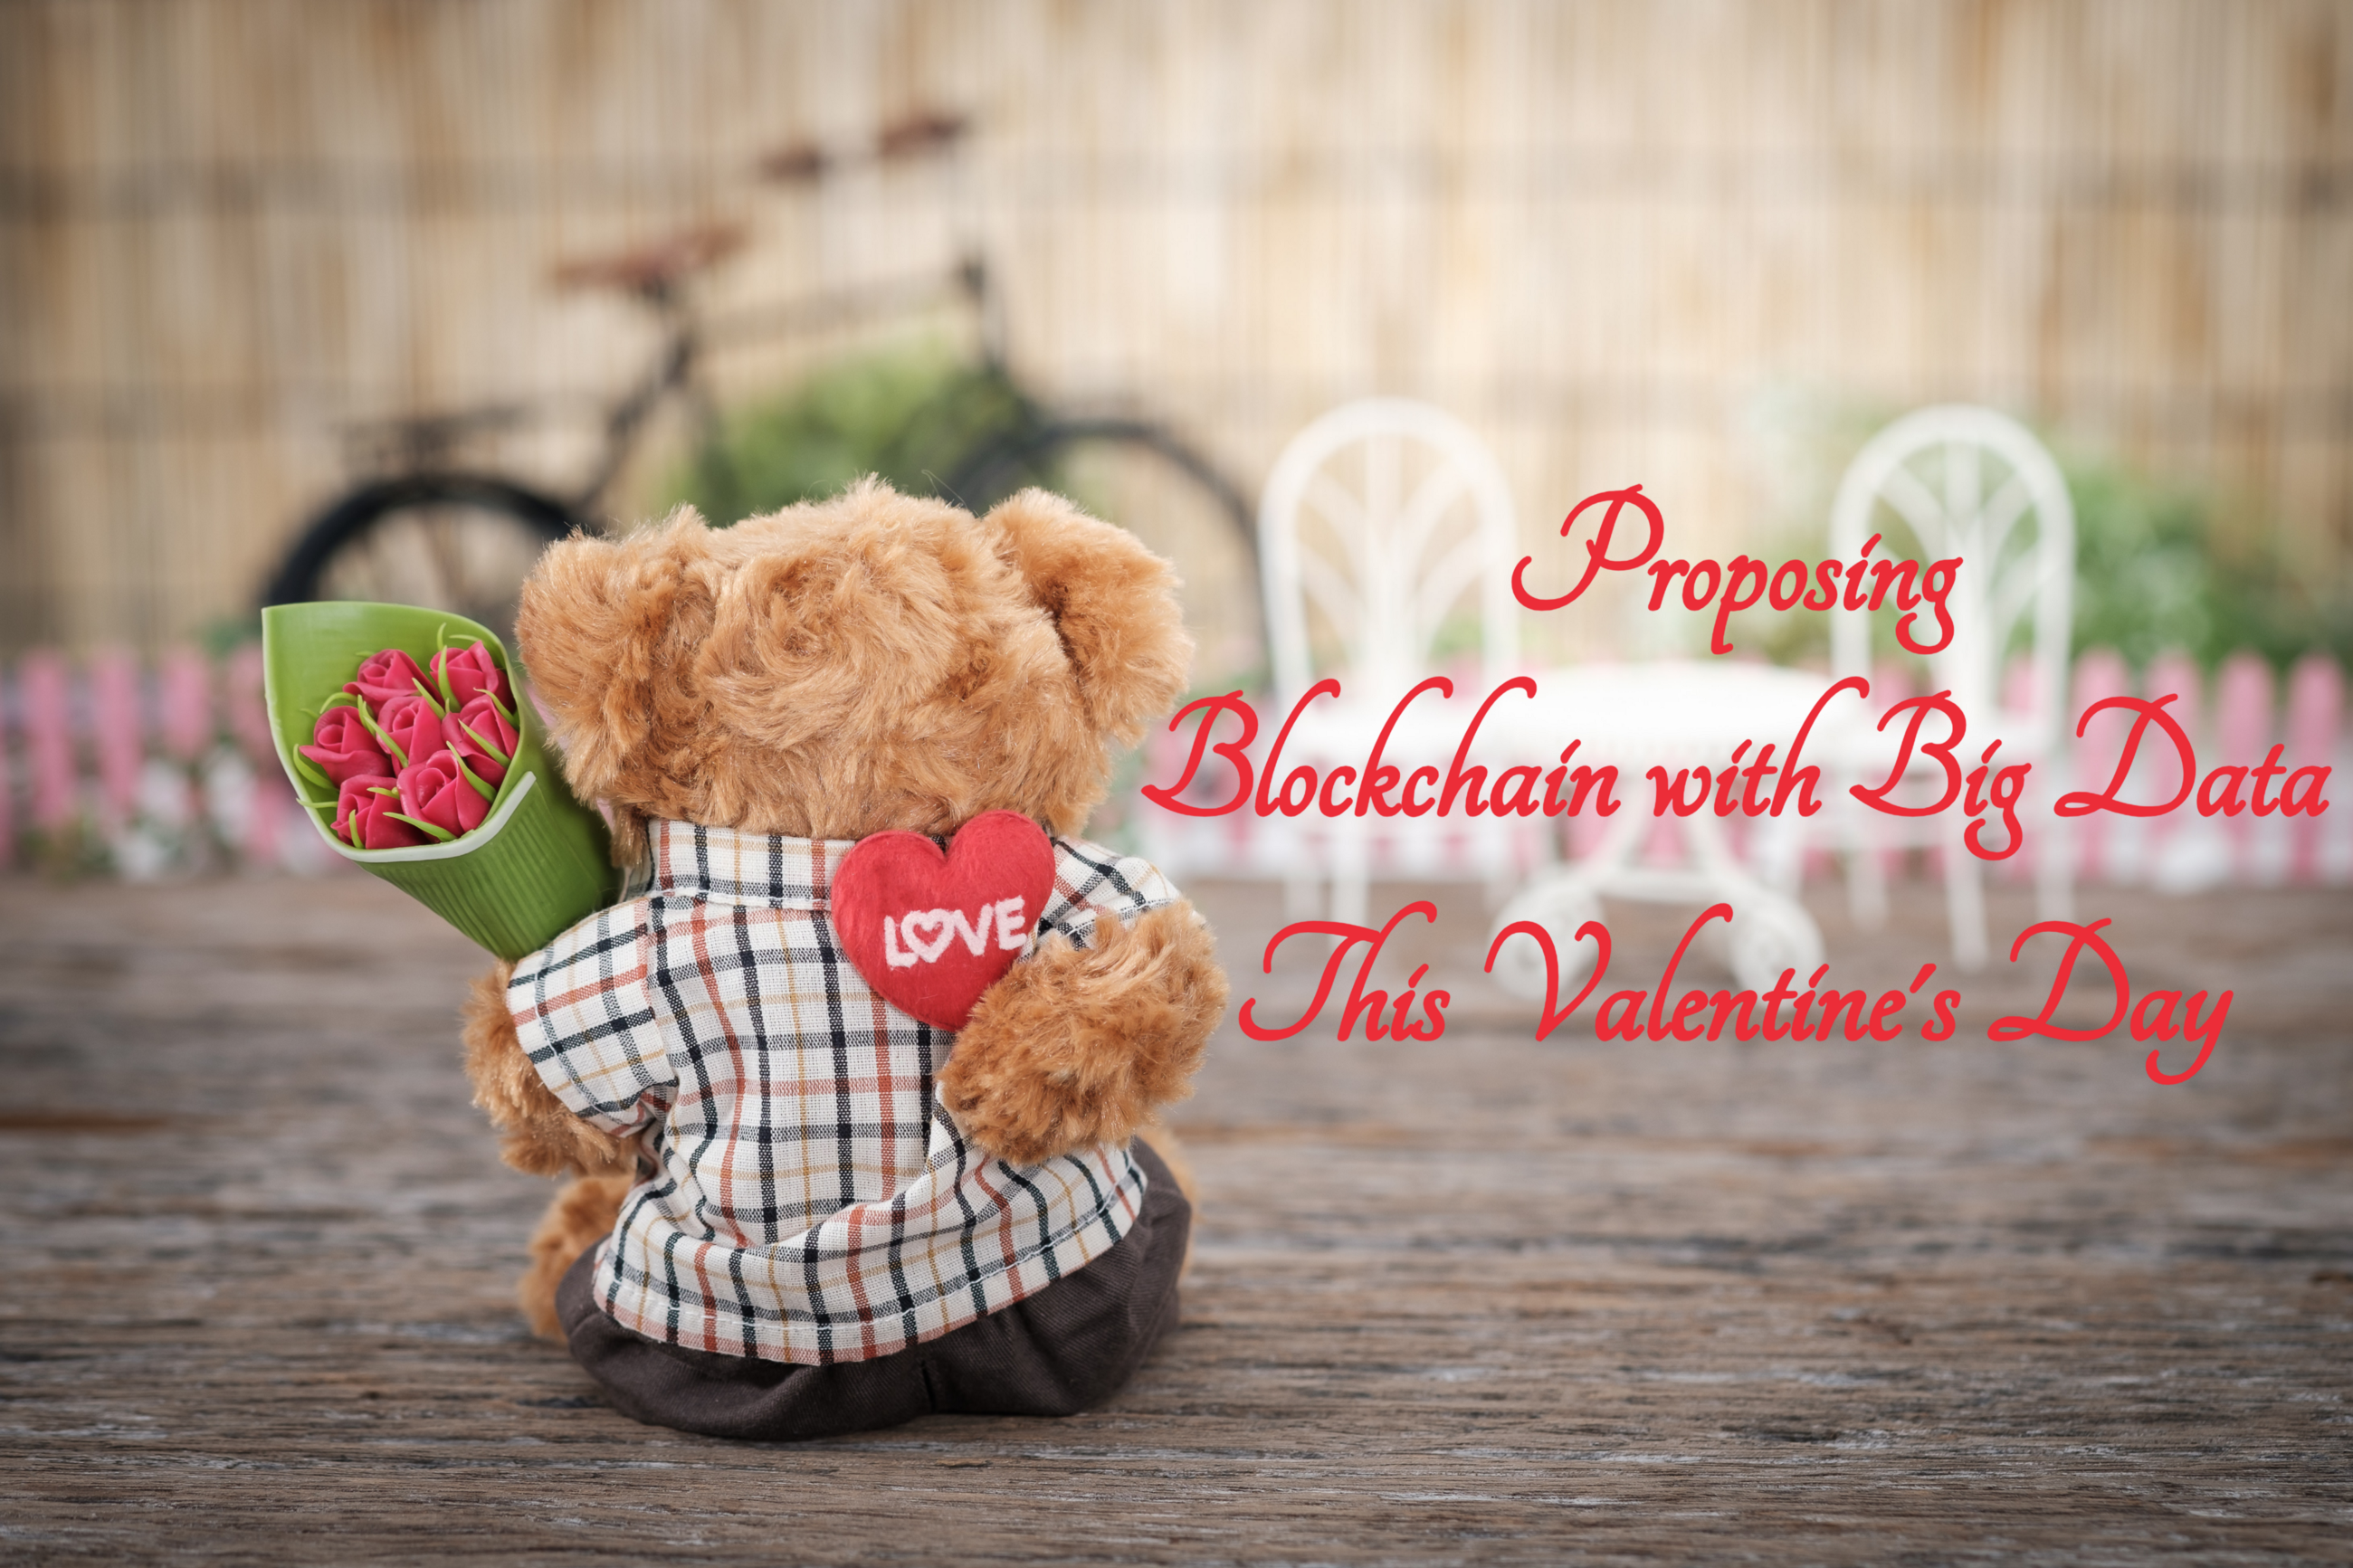 /proposing-blockchain-with-big-data-this-valentines-day-f03f0b435bb5 feature image